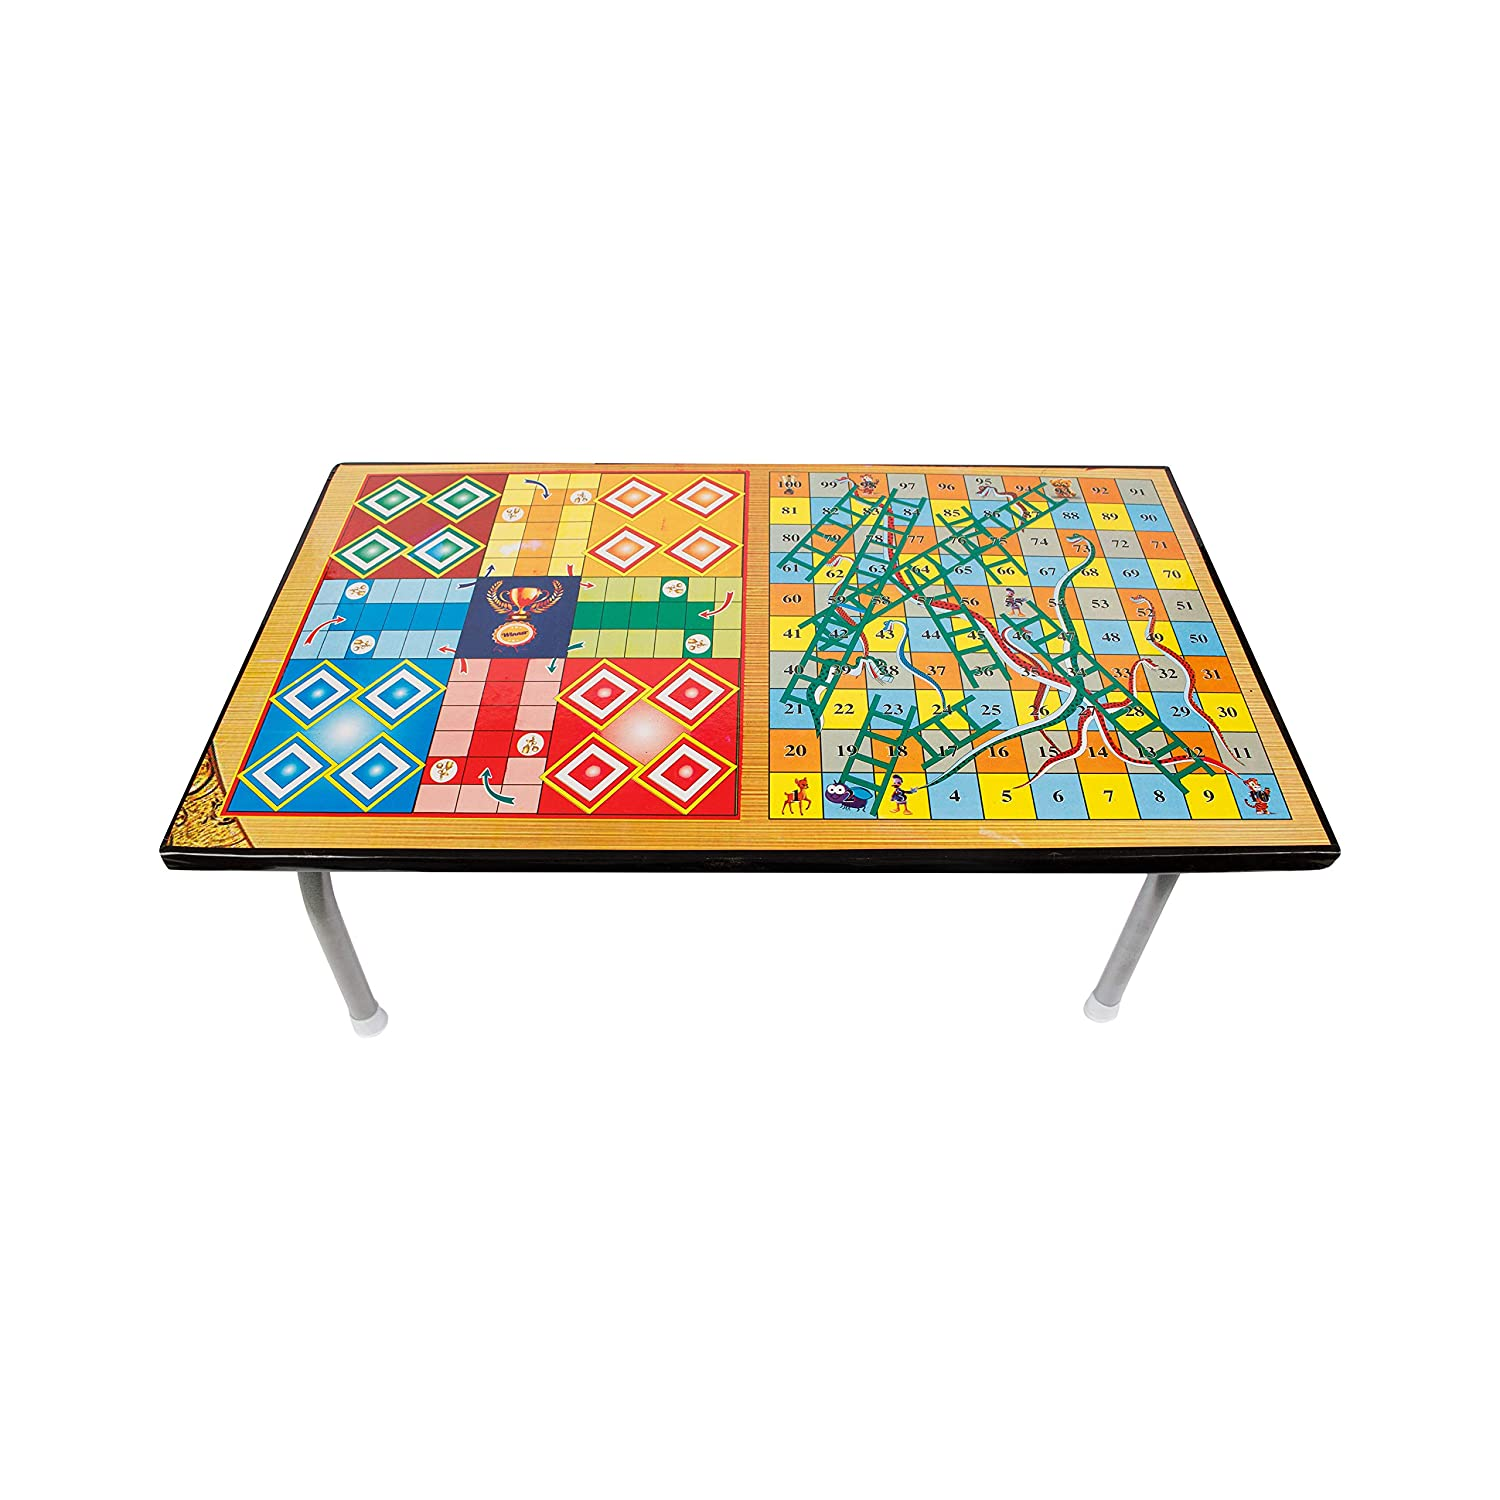 Multipurpose Wooden Foldable 2 in 1 Ludo Gaming Table